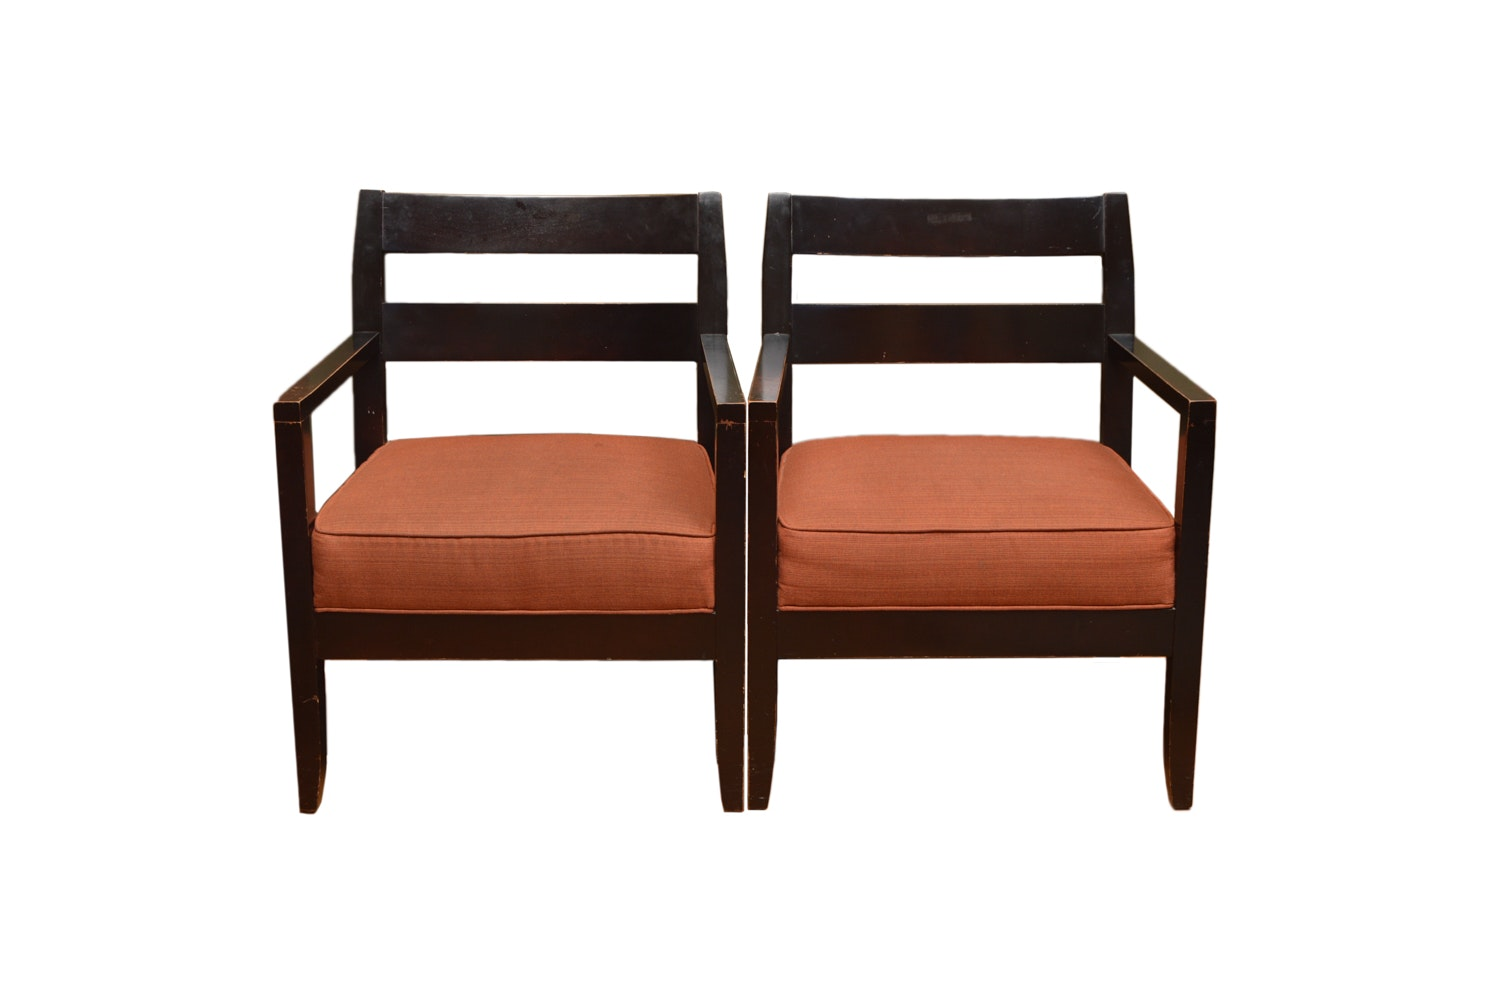 Wood Armchairs with Upholstered Seats by McCreary Modern